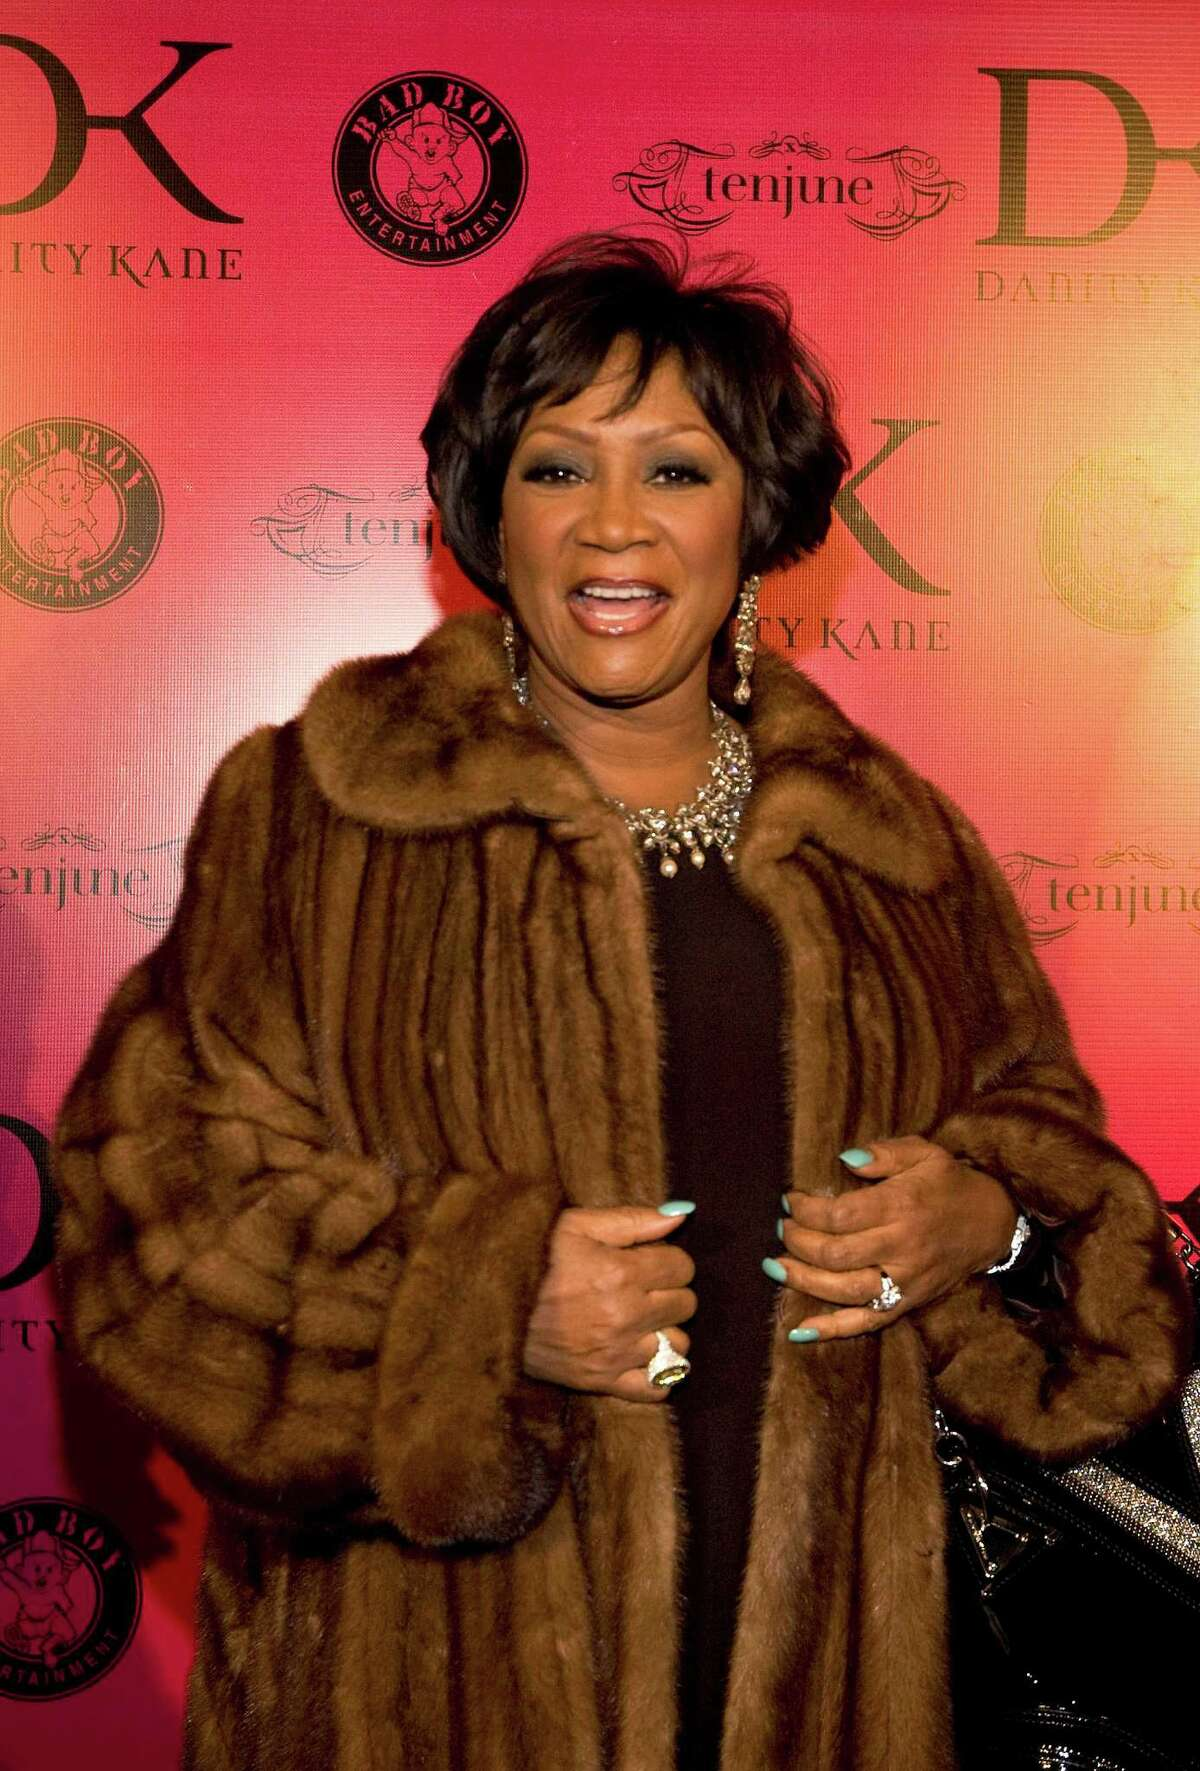 Formed out of the group Patti LaBelle and the Bluebelles, Labelle was a funk rock group that began in 1961. They were one of the first girl groups to wear uniform costumes and were the first contemporary pop group and the first black pop group to perform at the Metropolitan Opera House. Listen to: